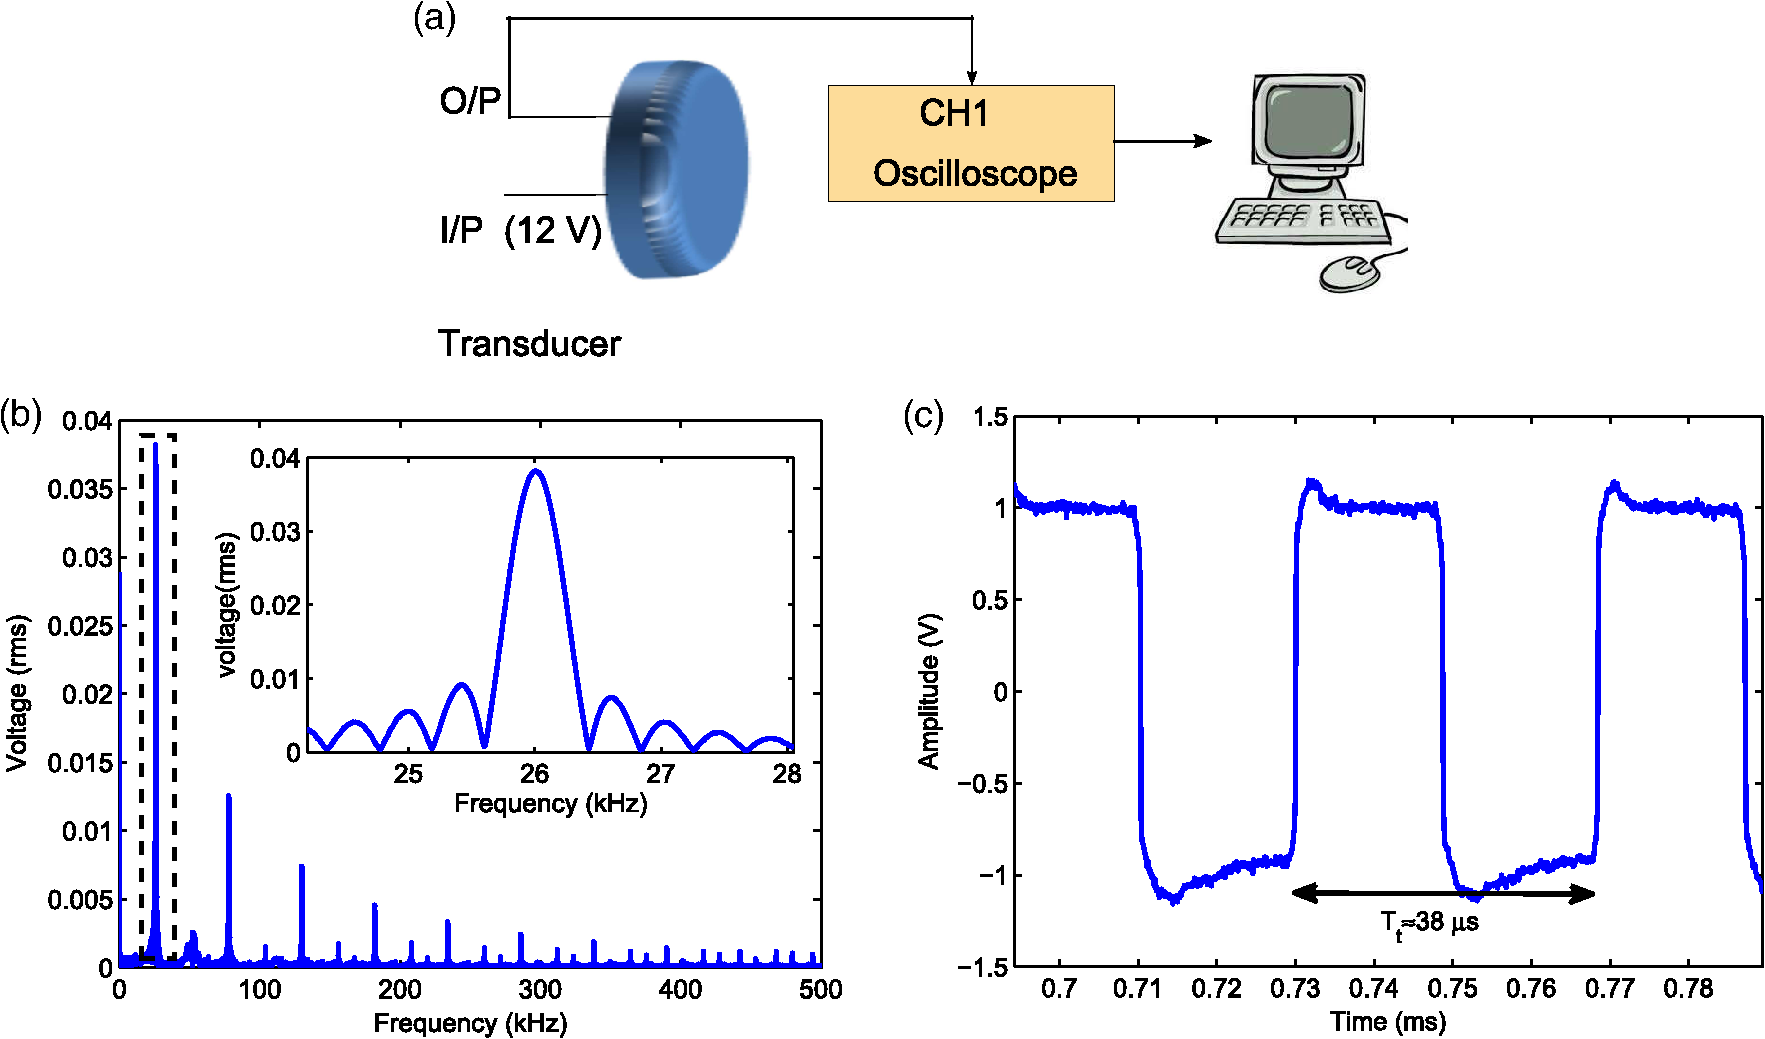 Cost Effective Laser Feedback Sensor For Nanometric Scale Acoustic Ultrasound Transducer Can Be Simulated With A Rlc Circuit As Shown In Characterization Of The Used Source Echo Mode Schematic Setup B Frequency Spectrum Aw Emitted By